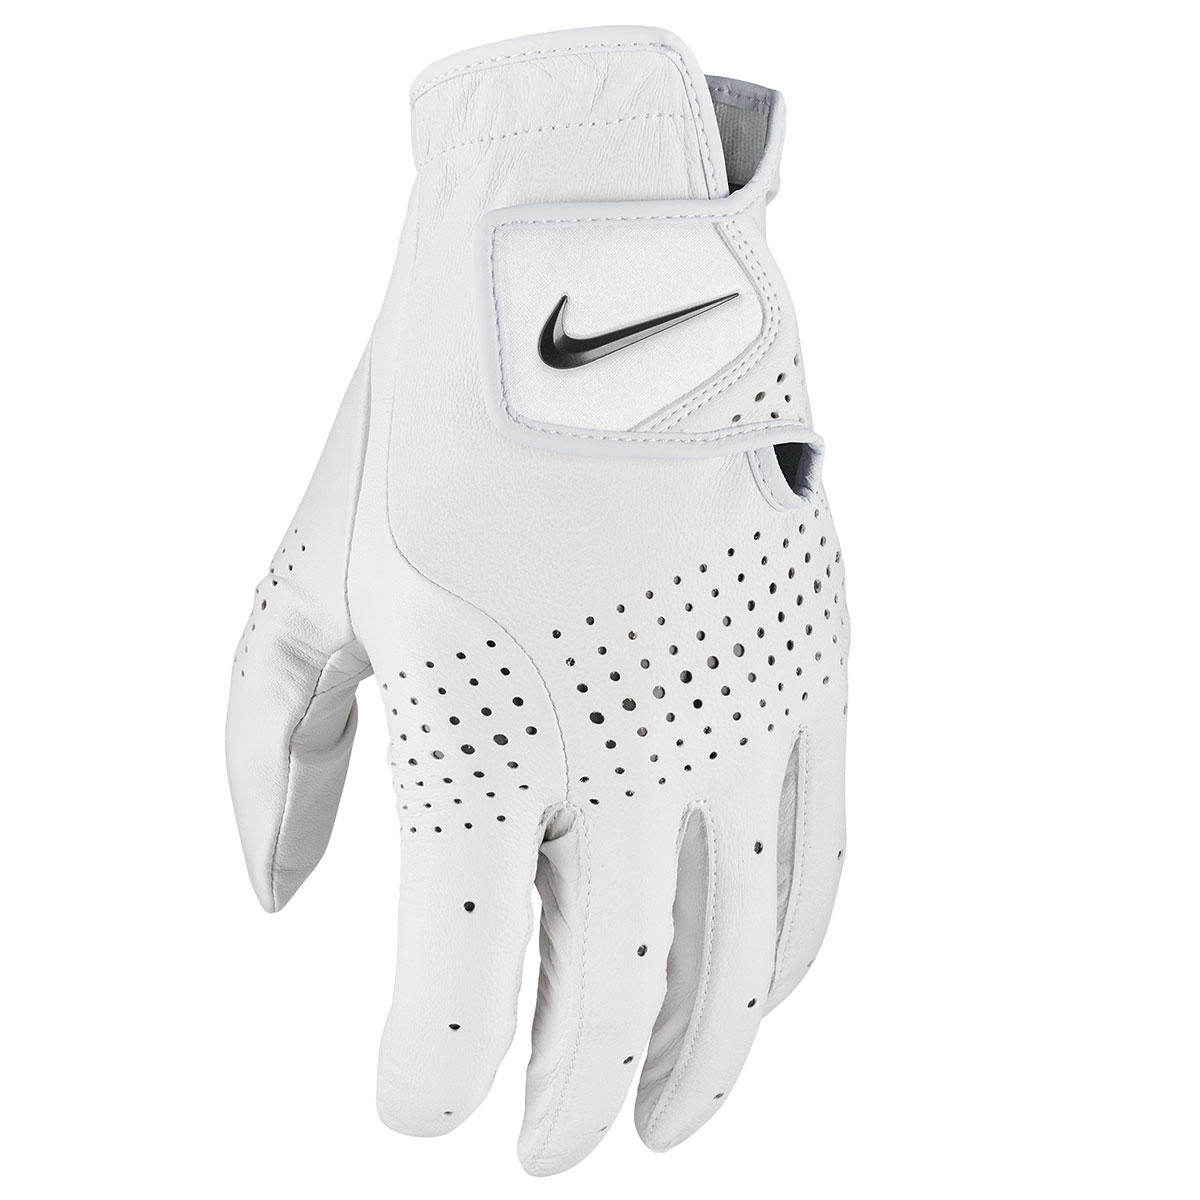 Subvención Claire magia  Nike Golf Tour Classic III Glove from american golf